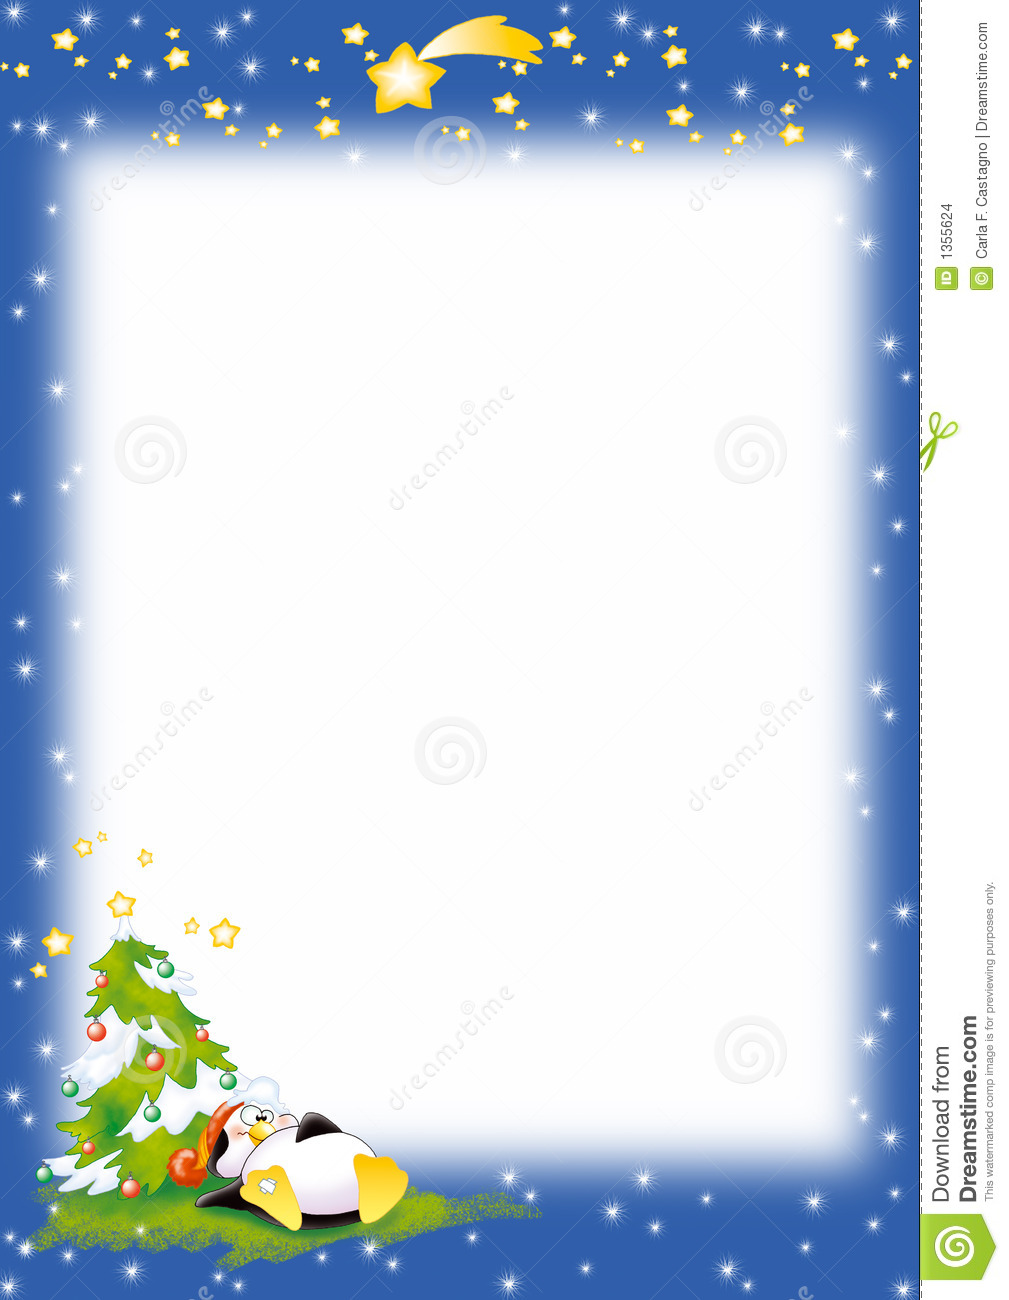 Blue Christmas background with humorous penguin, tree and comet. Good ...